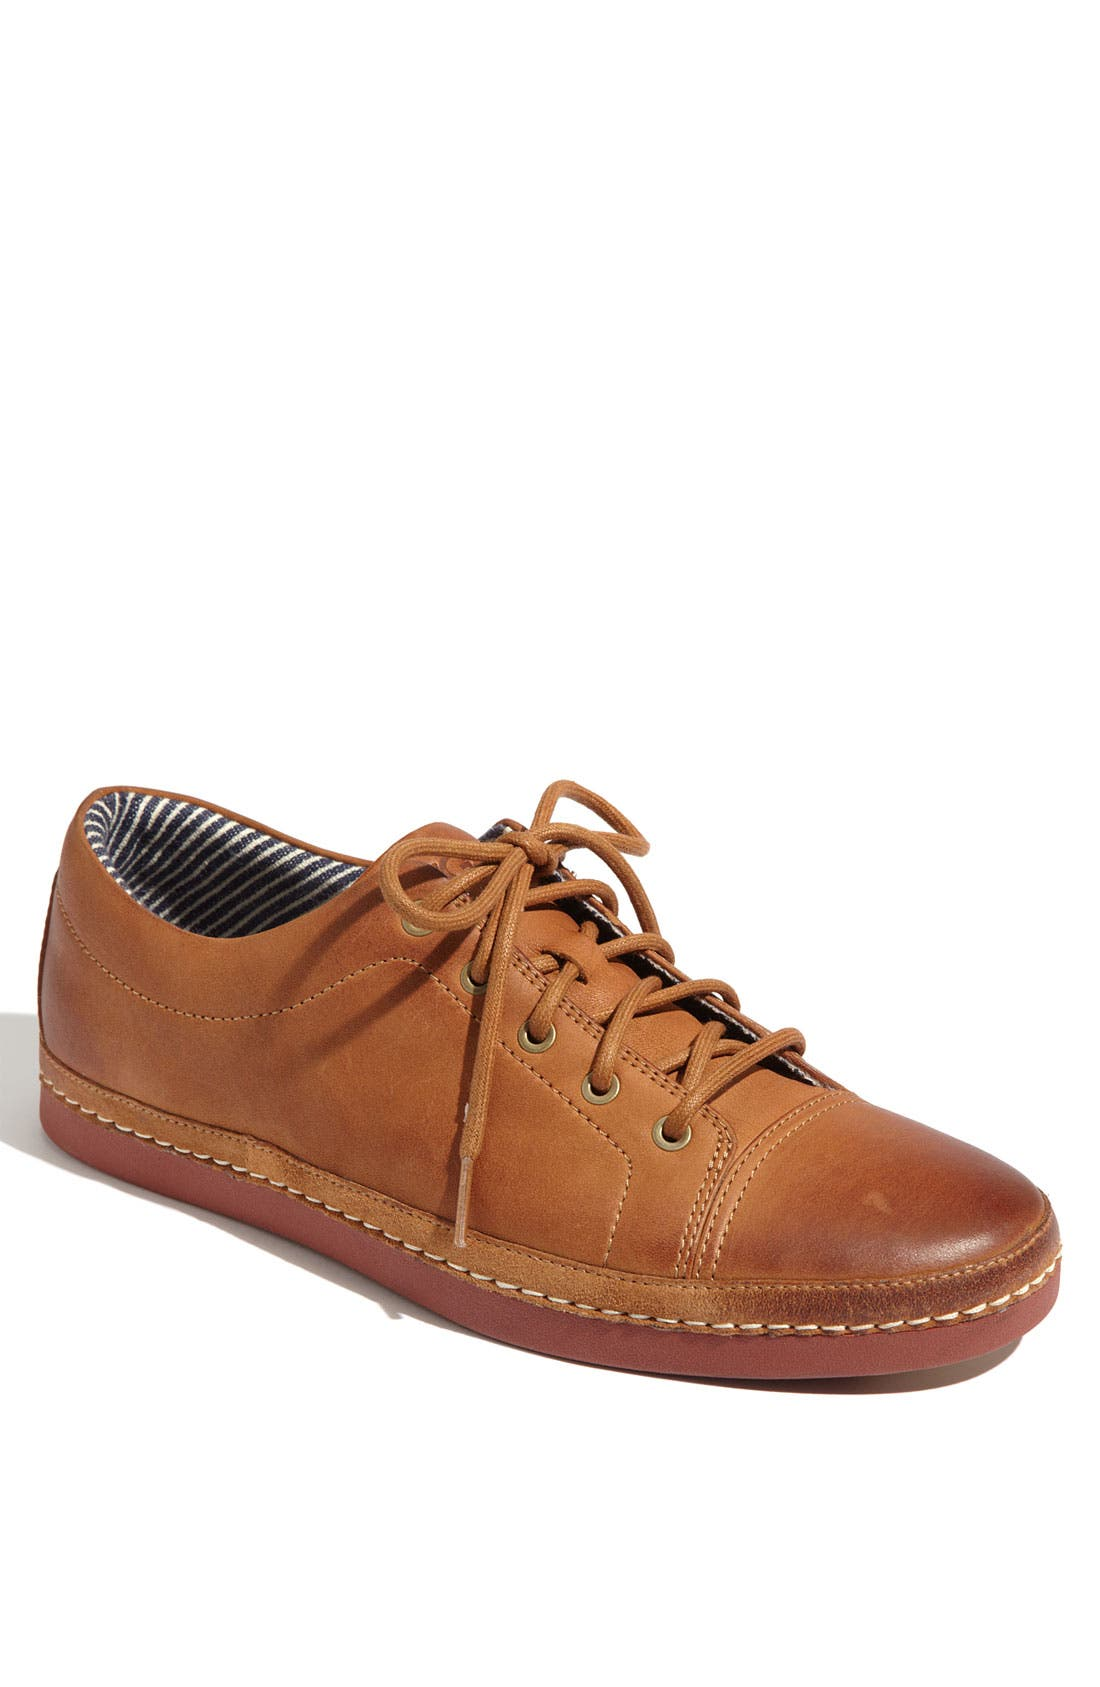 Main Image - UGG® Australia 'Duncan Bay' Leather Sneaker (Men)